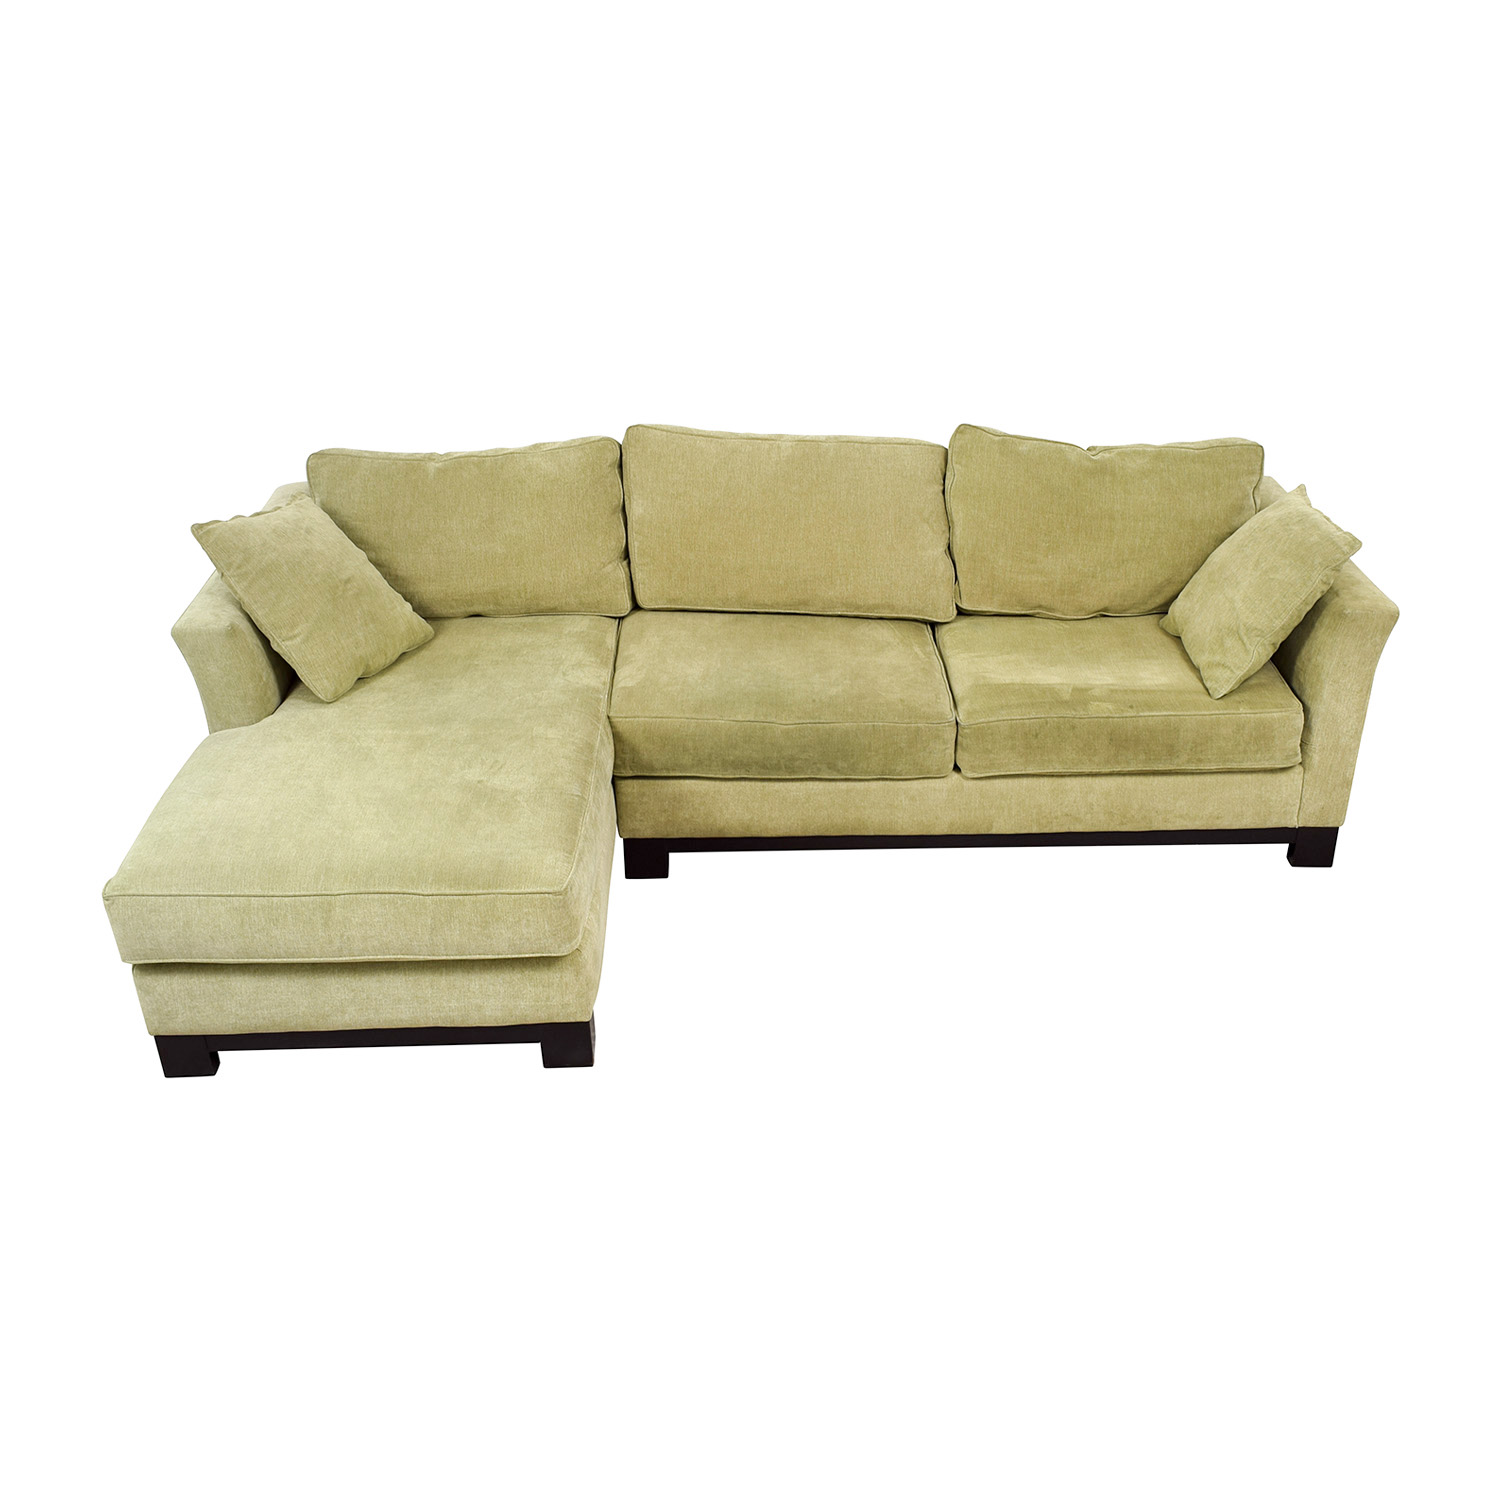 Macy's Macy's Light Green Chaise Sectional coupon